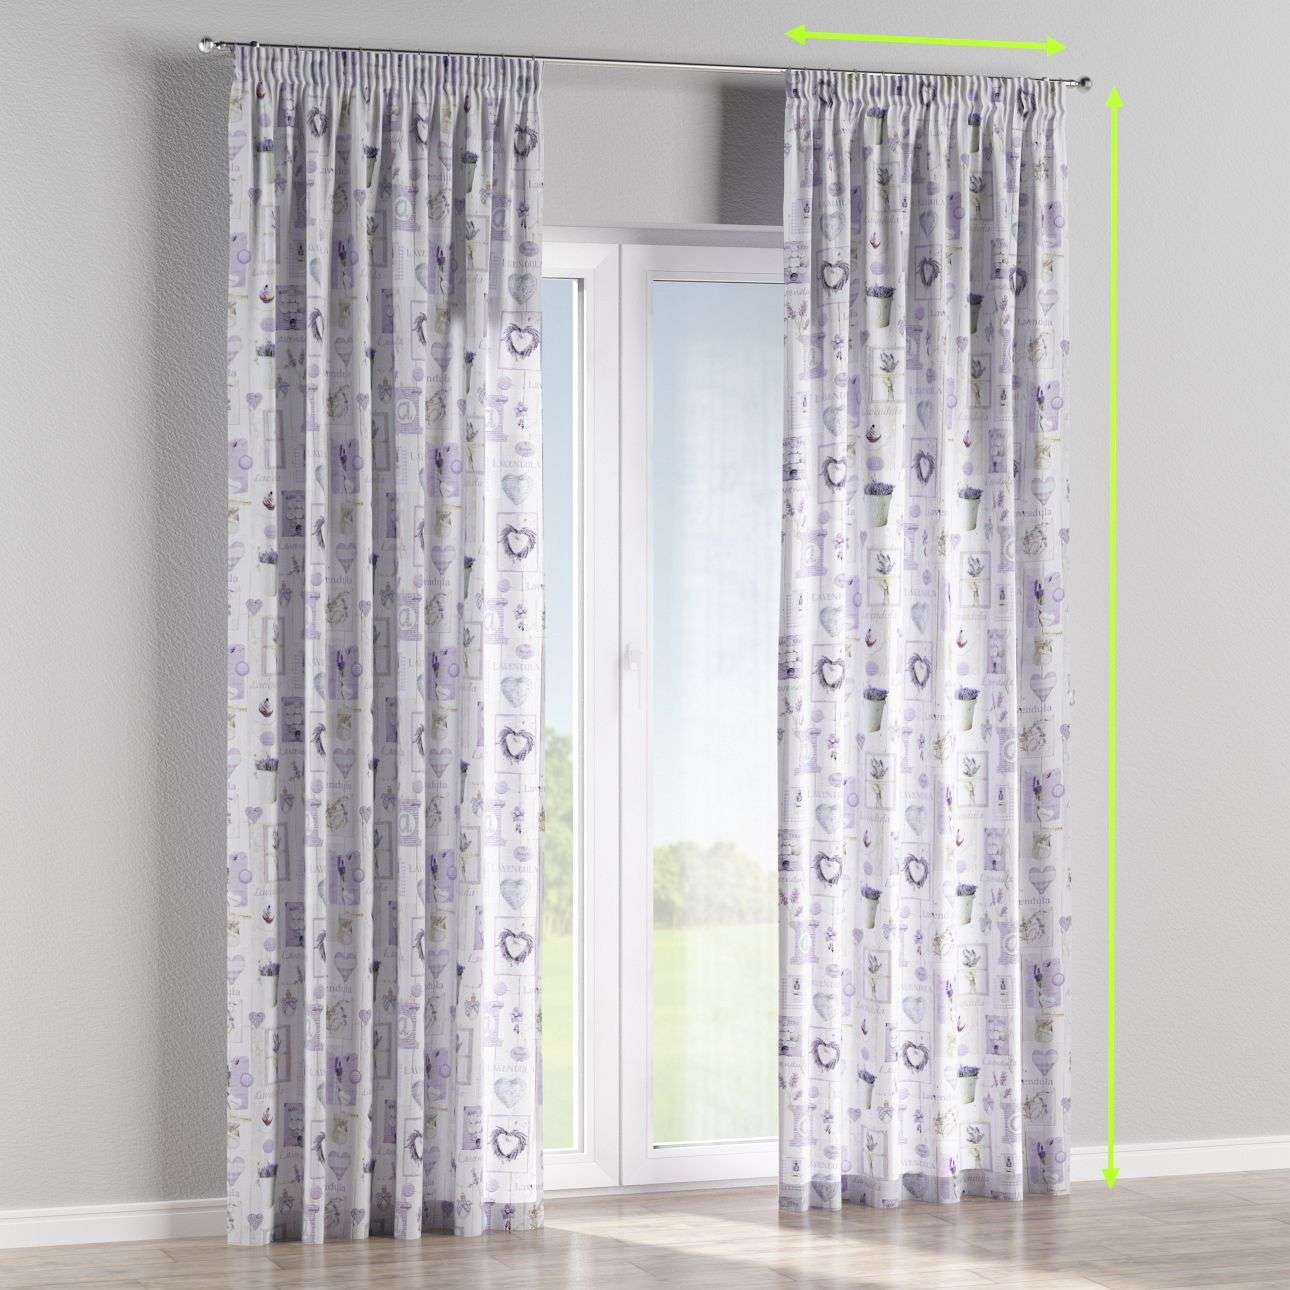 Pencil pleat lined curtains in collection Ashley, fabric: 140-18